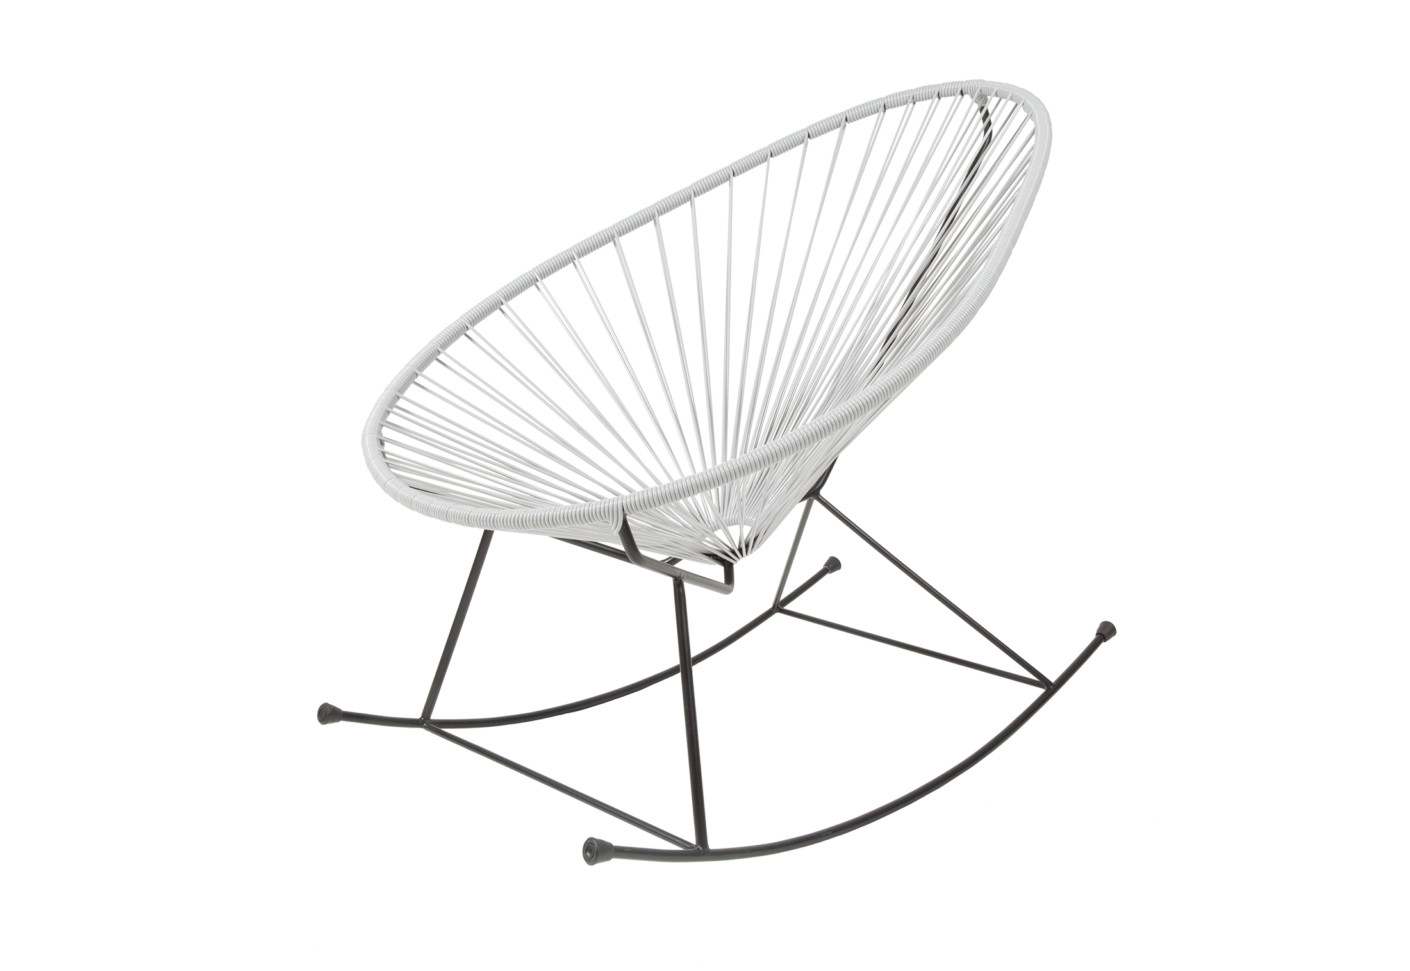 Mexico Chair Schaukelstuhl Acapulco Chair Rocking Gris By Acapulco Design Stylepark